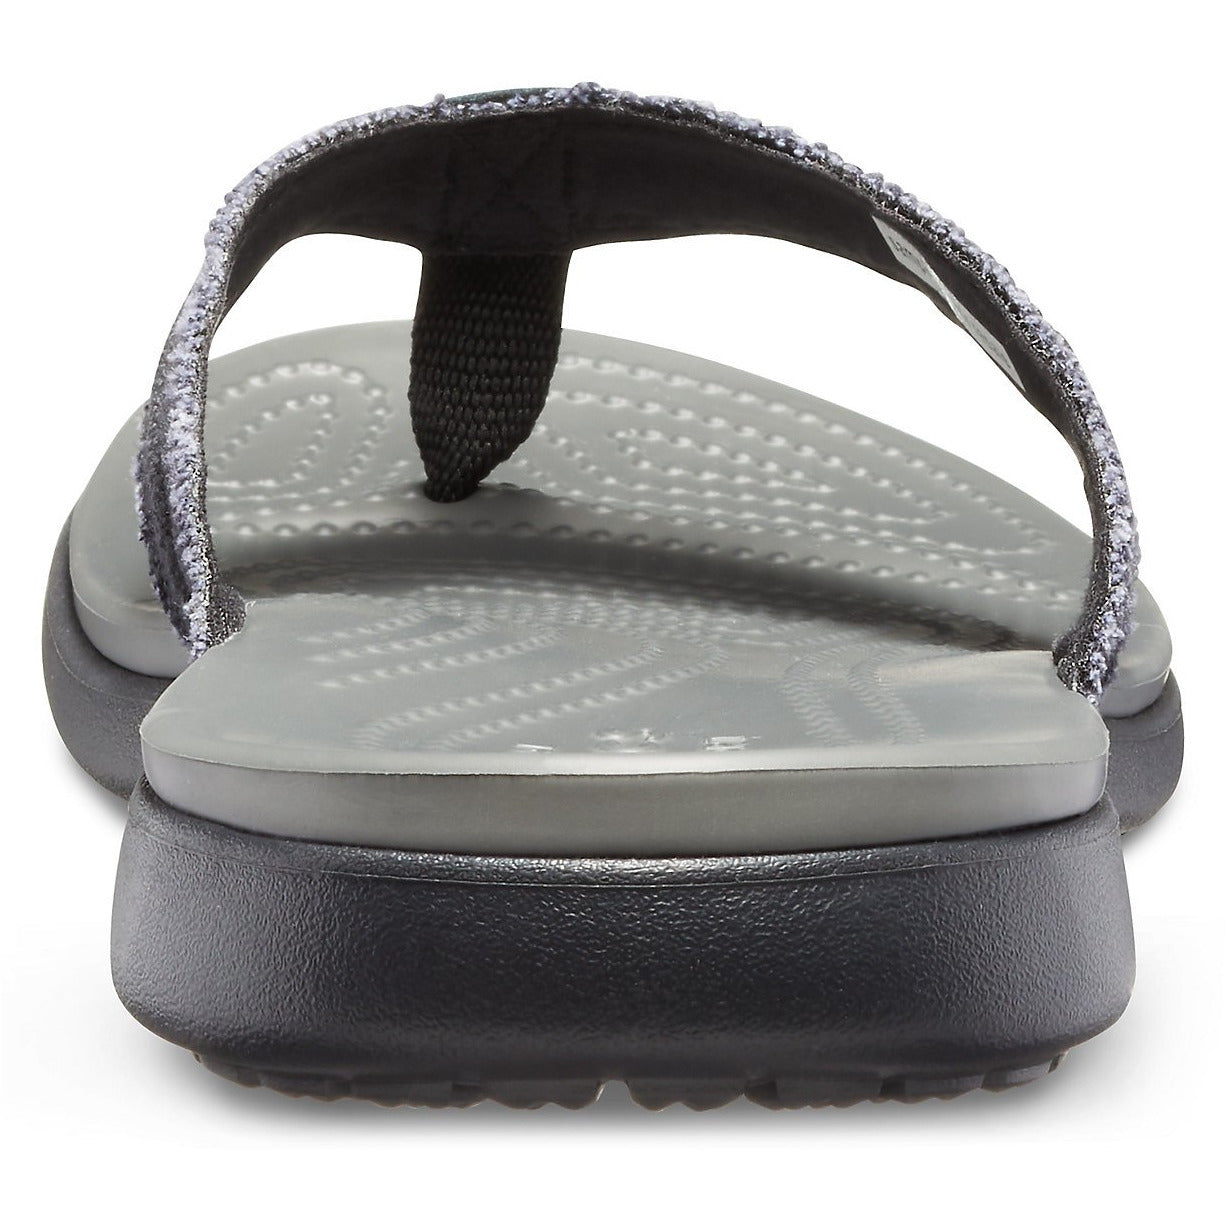 SANTA CRUZ CANVAS FLIP BLACK/SLATE GREY getset-footwear.myshopify.com